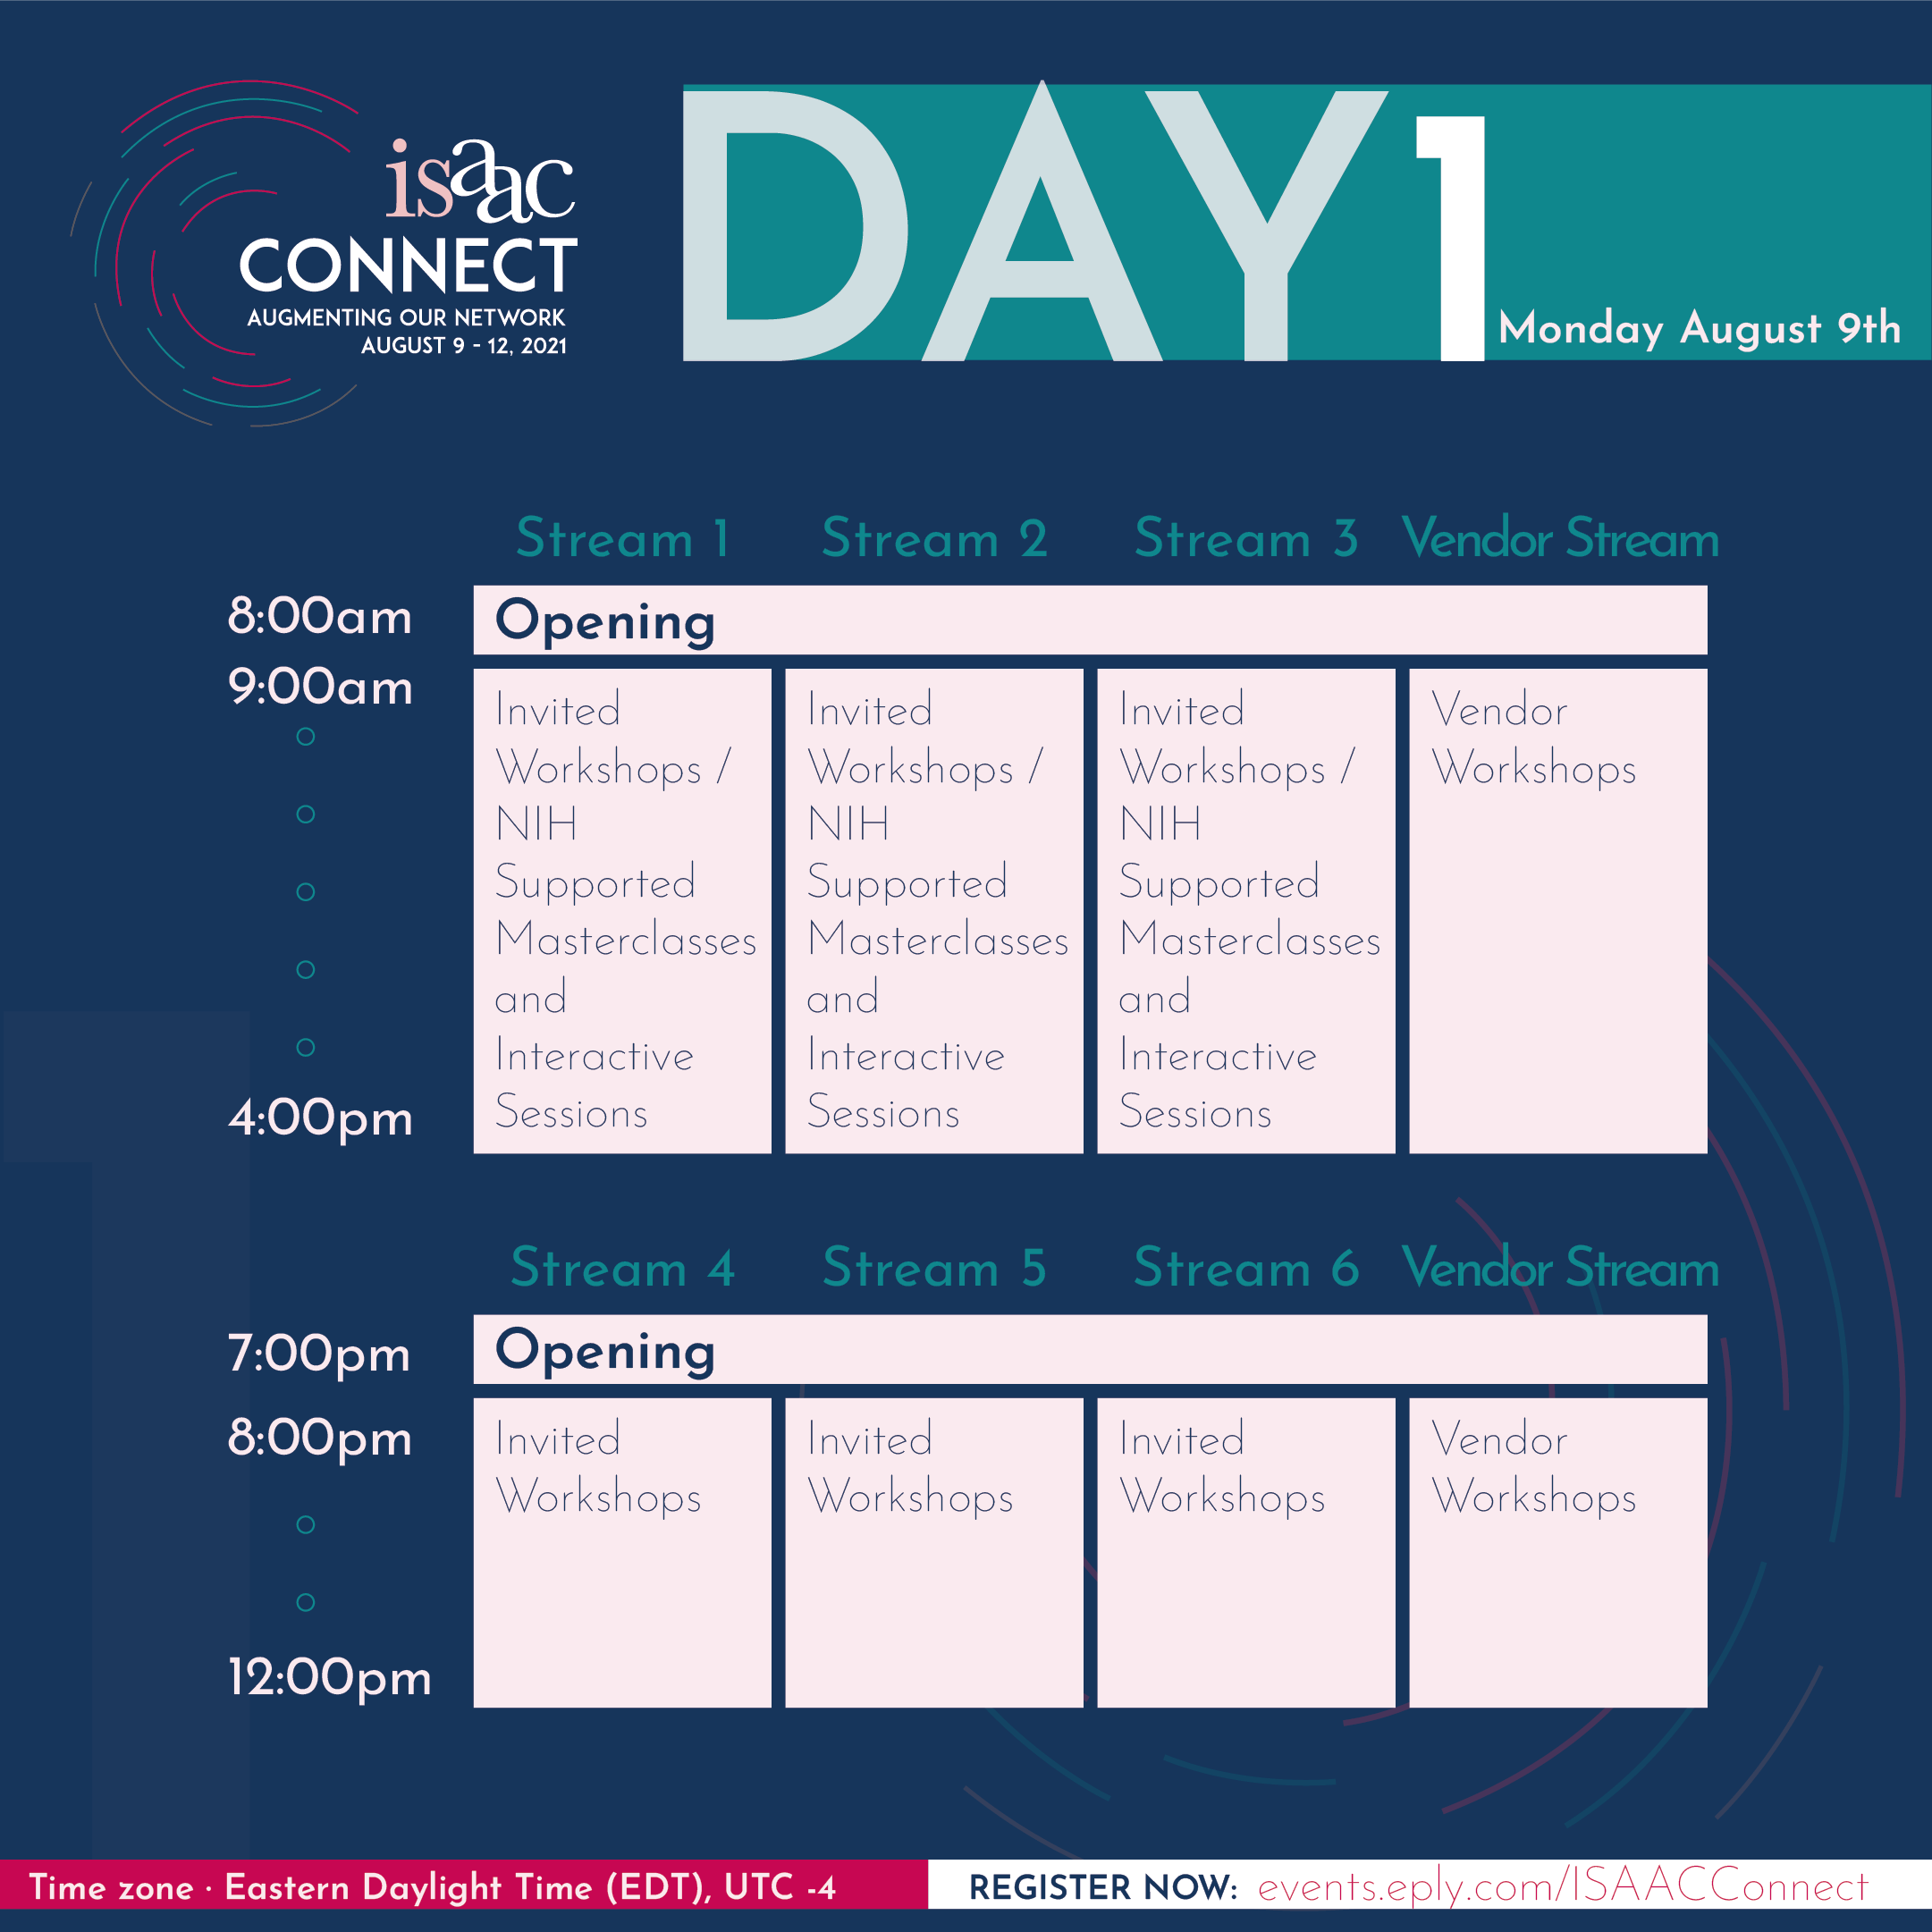 ISAAC Connect, Day 1, Schedule at a Glance